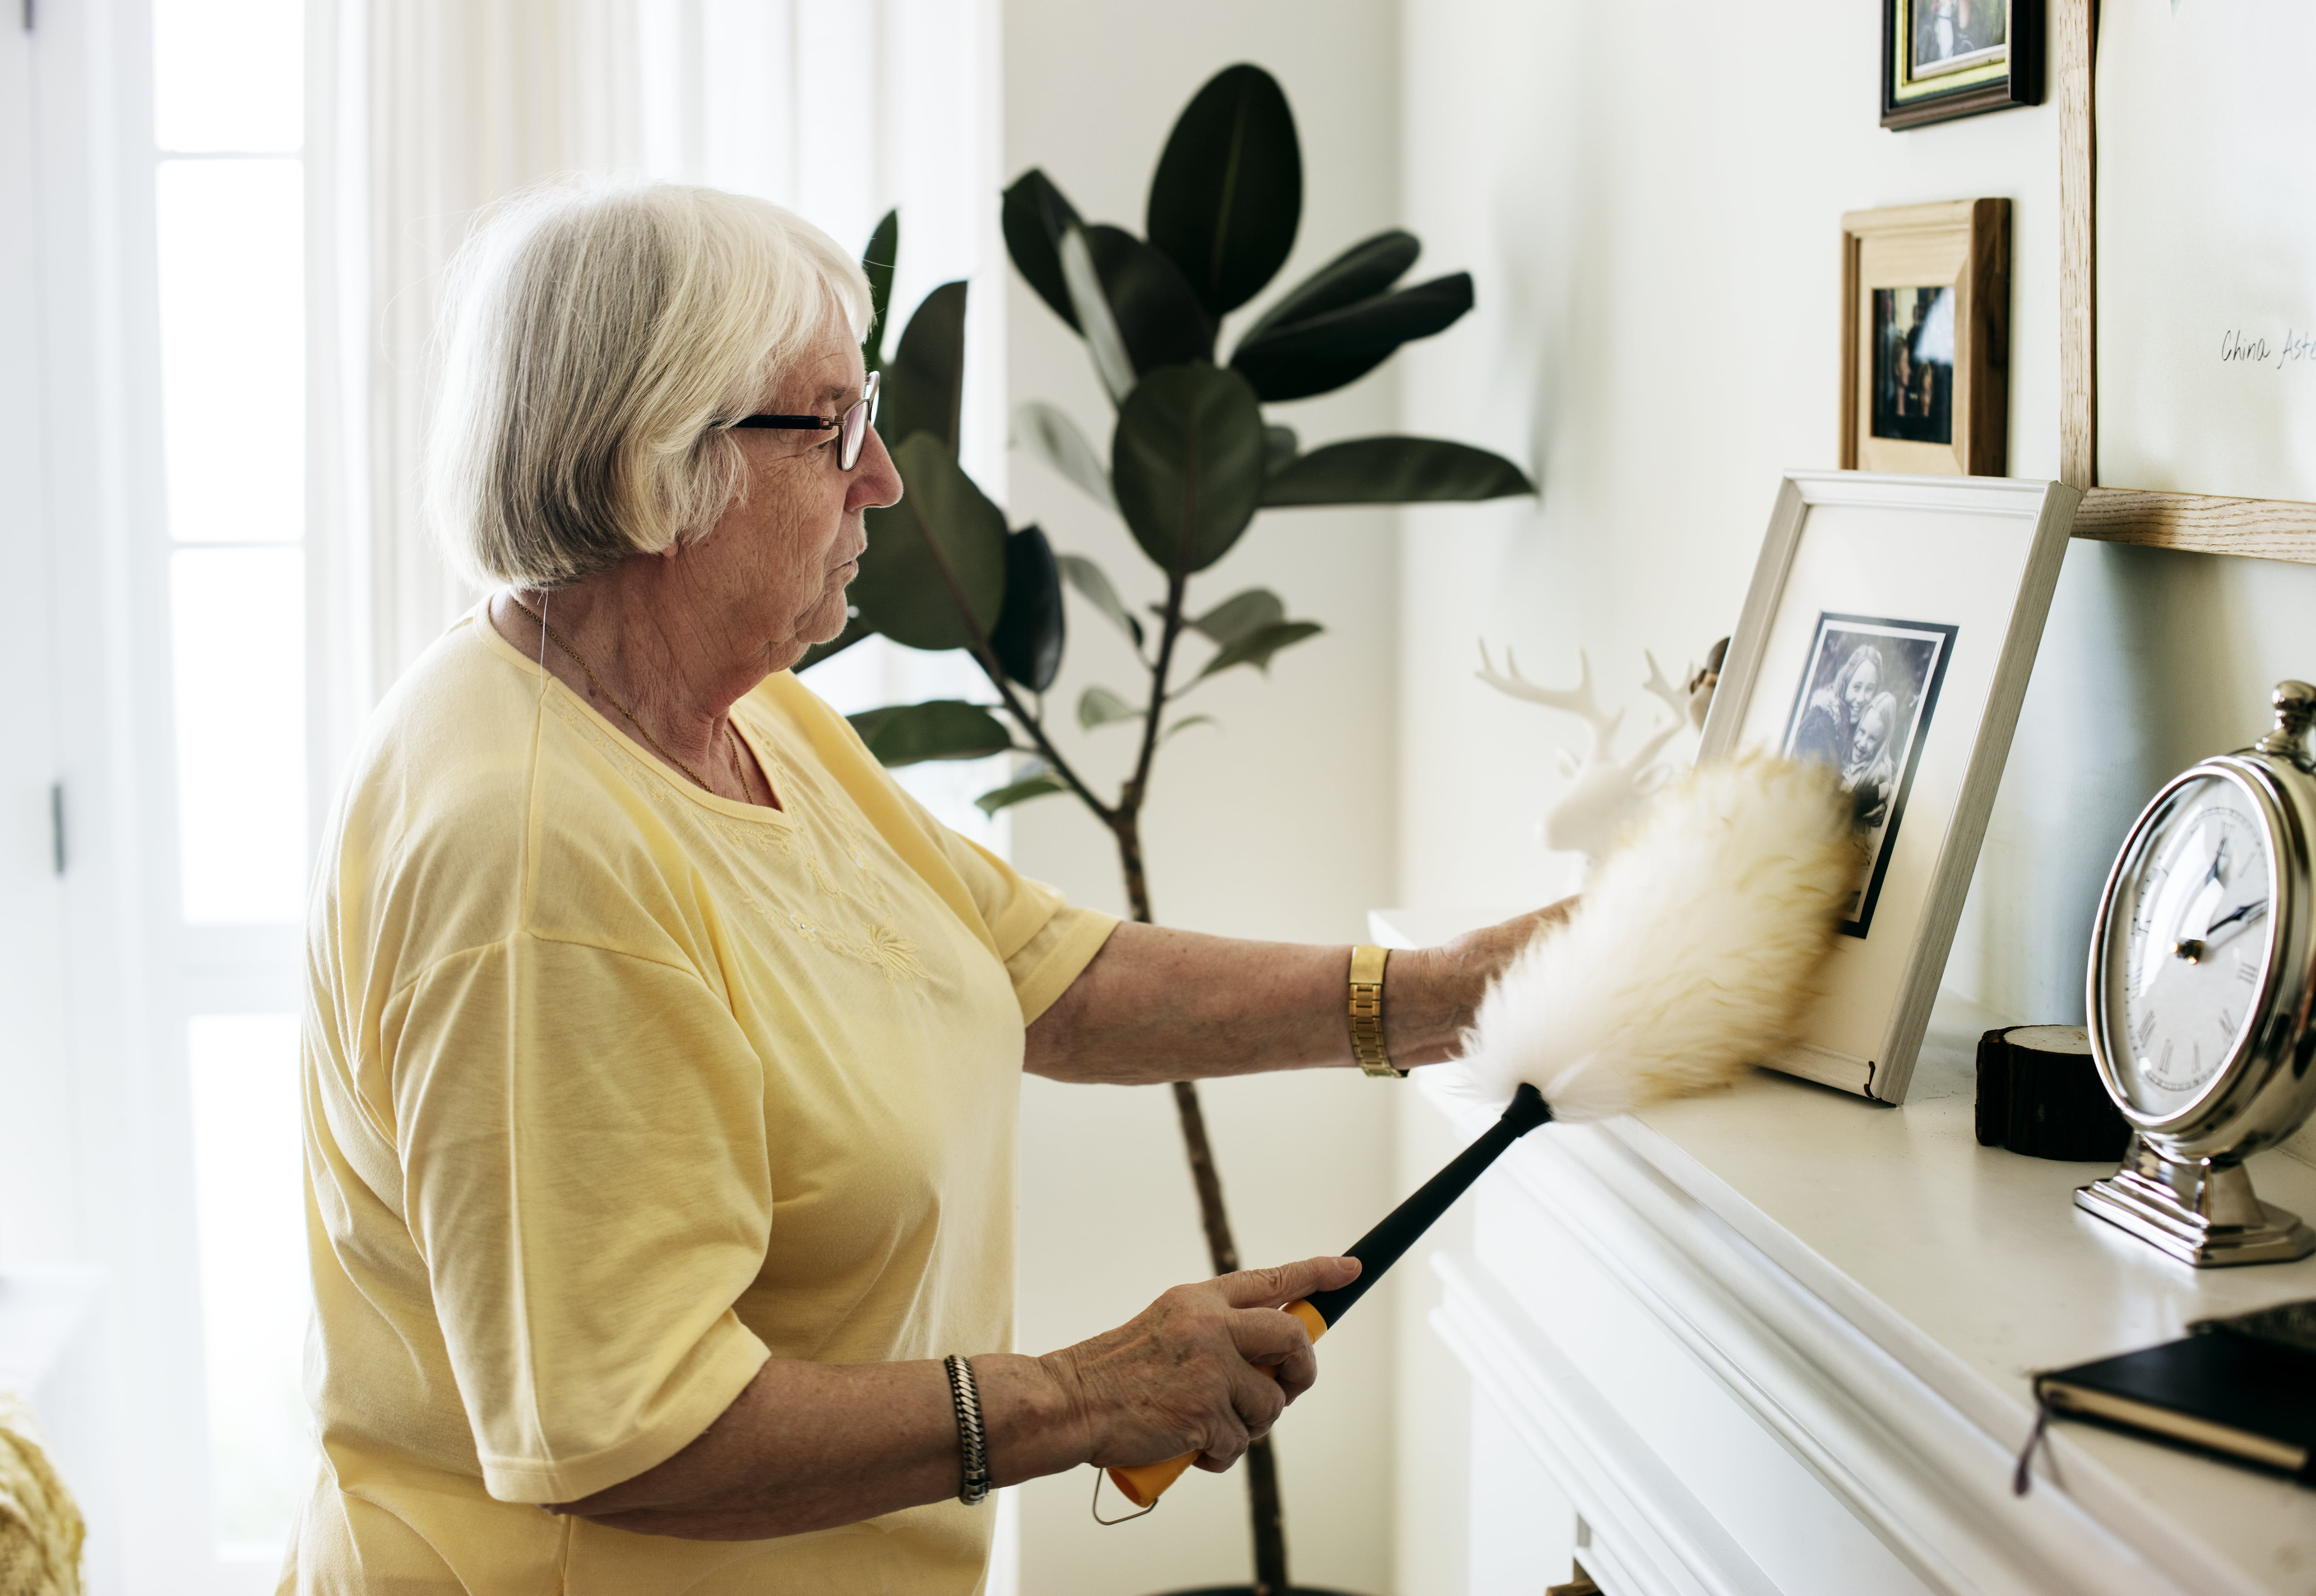 Do You Really Need That (Coffee Pot) in Your Assisted Living Apartment?